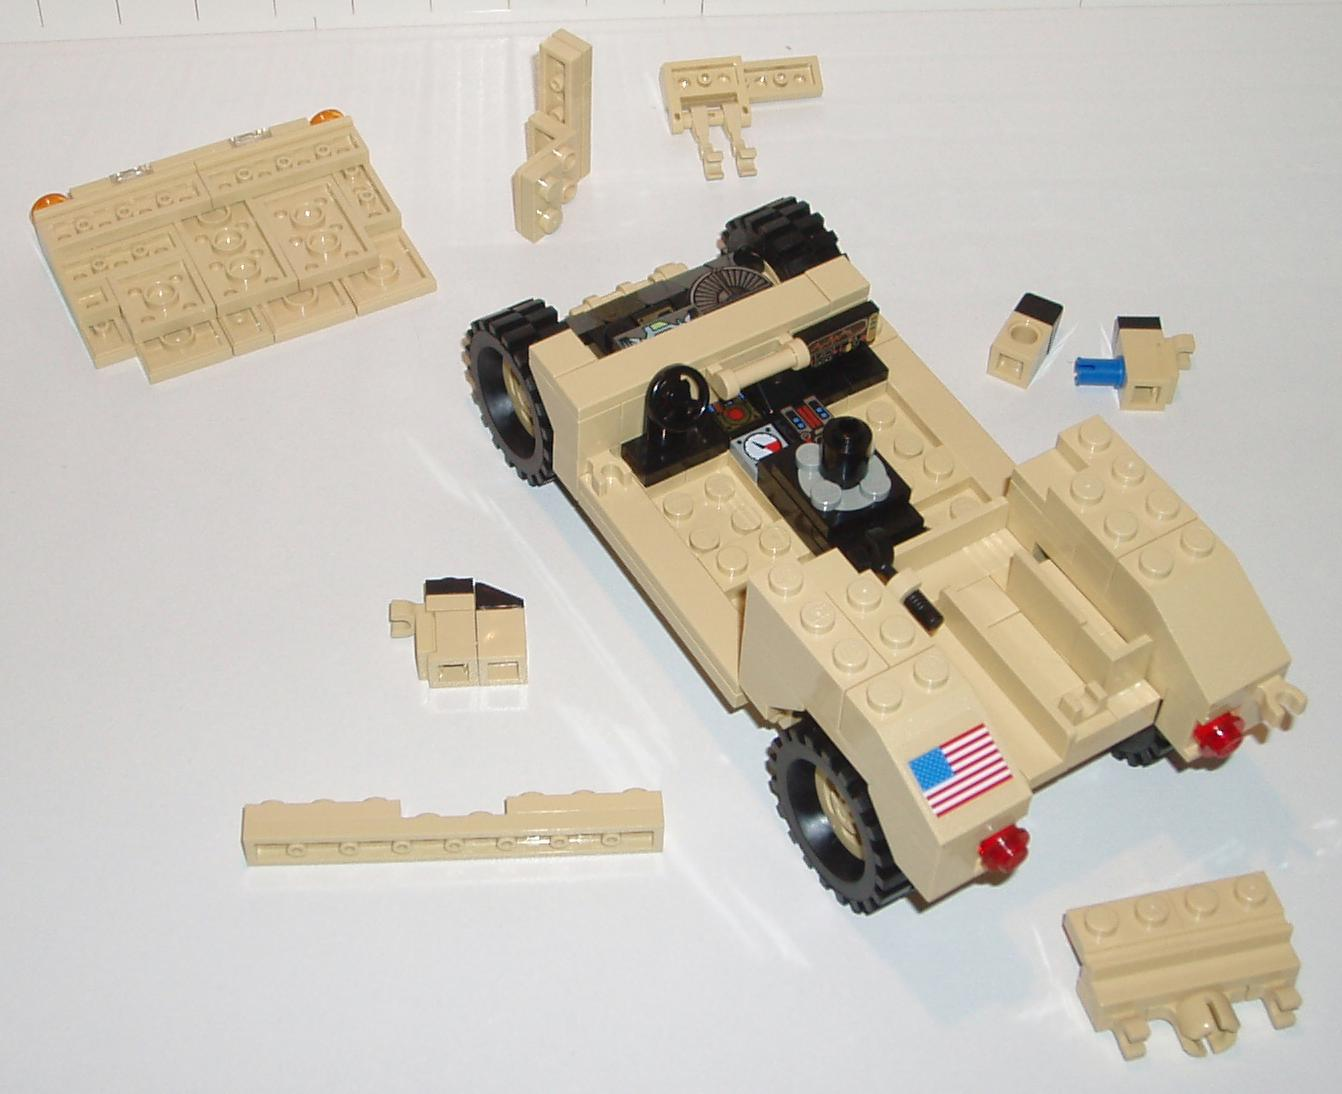 sfzdk_-_humvee_assembly_-_09-12.jpg